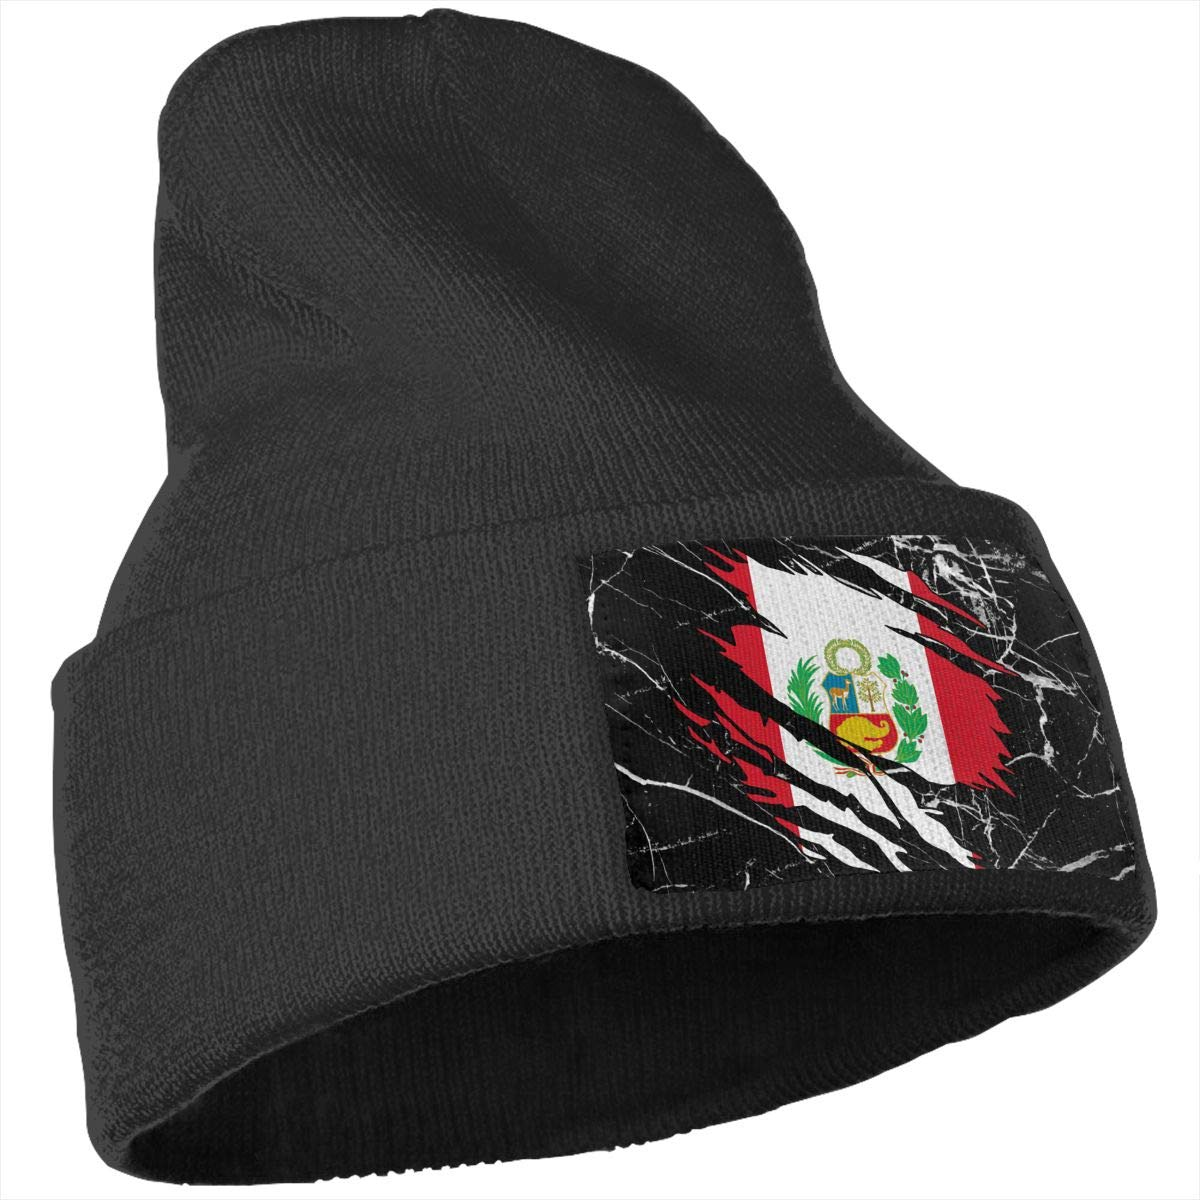 Stretchy /& Soft Winter Ski Knit Caps Ripped Peru Flag Men /& Women Solid Color Knit Beanie Hat